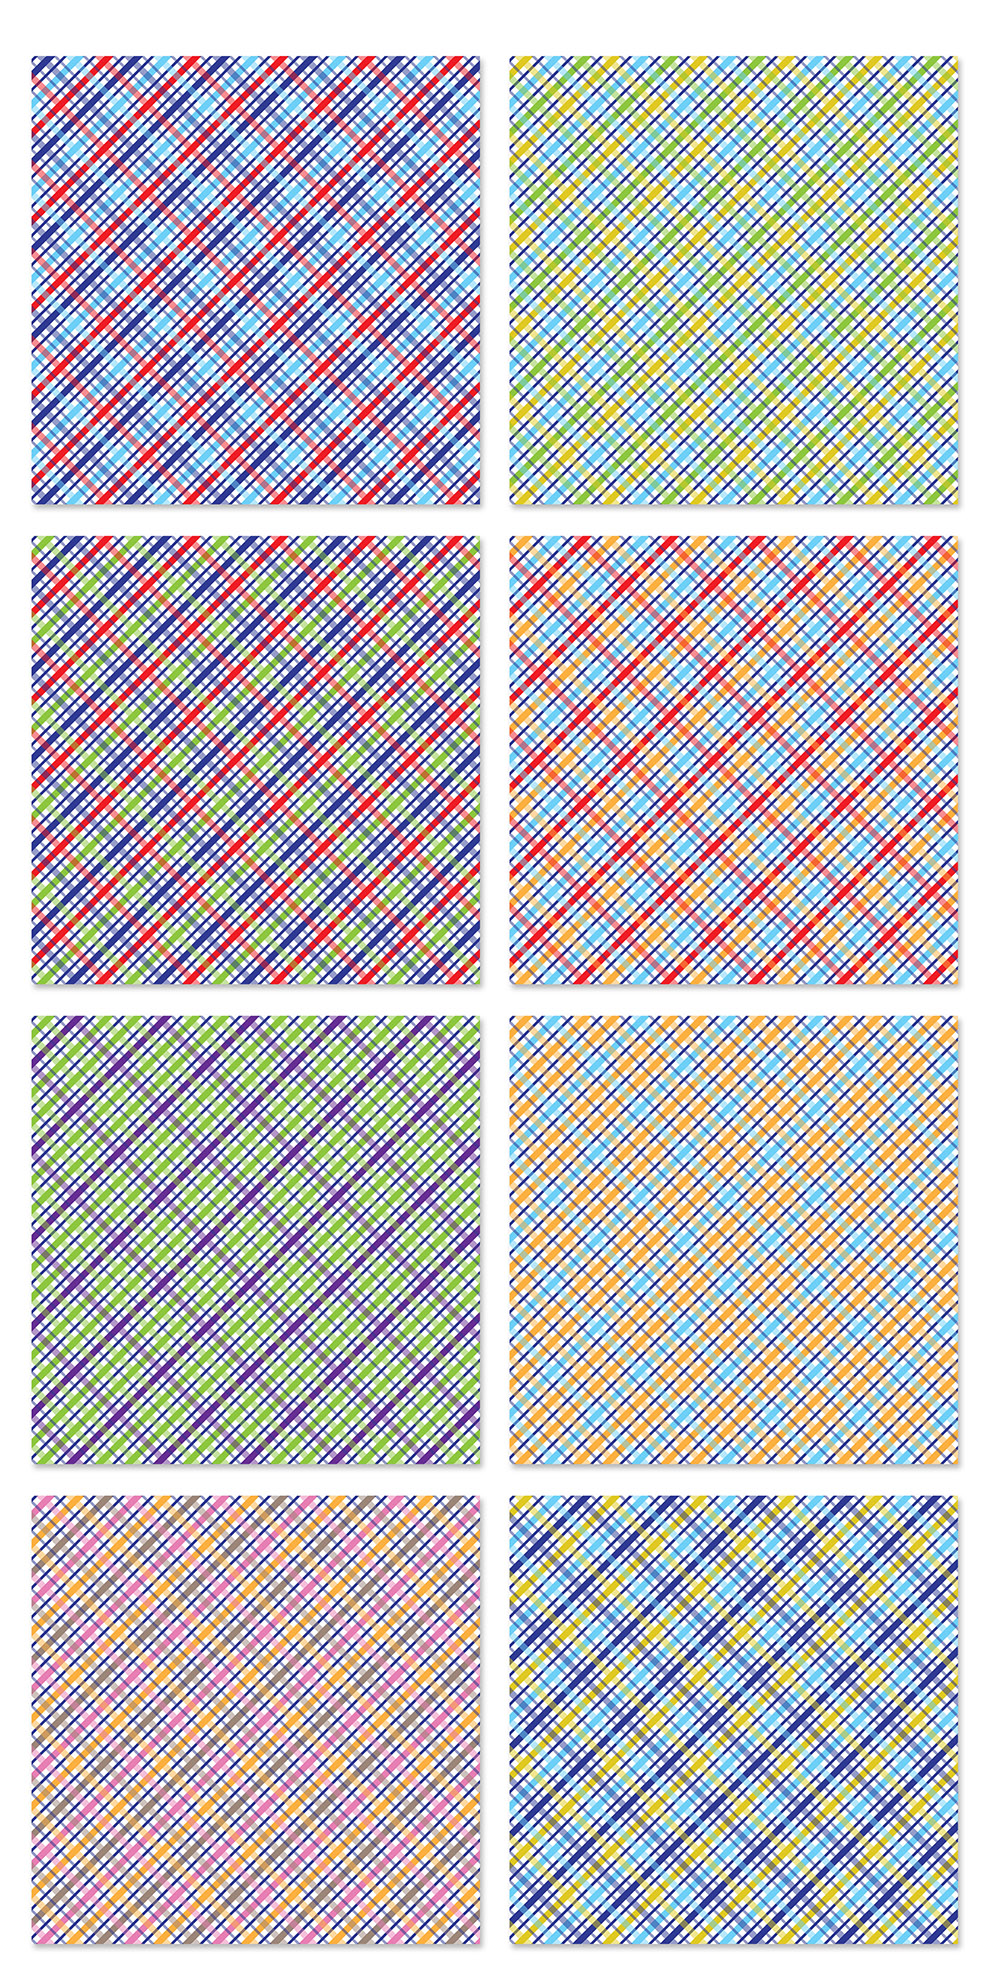 Plaid Digital Paper Pack / Backgrounds / Scrapbooking / Patterns / Printables / Card Making example image 3